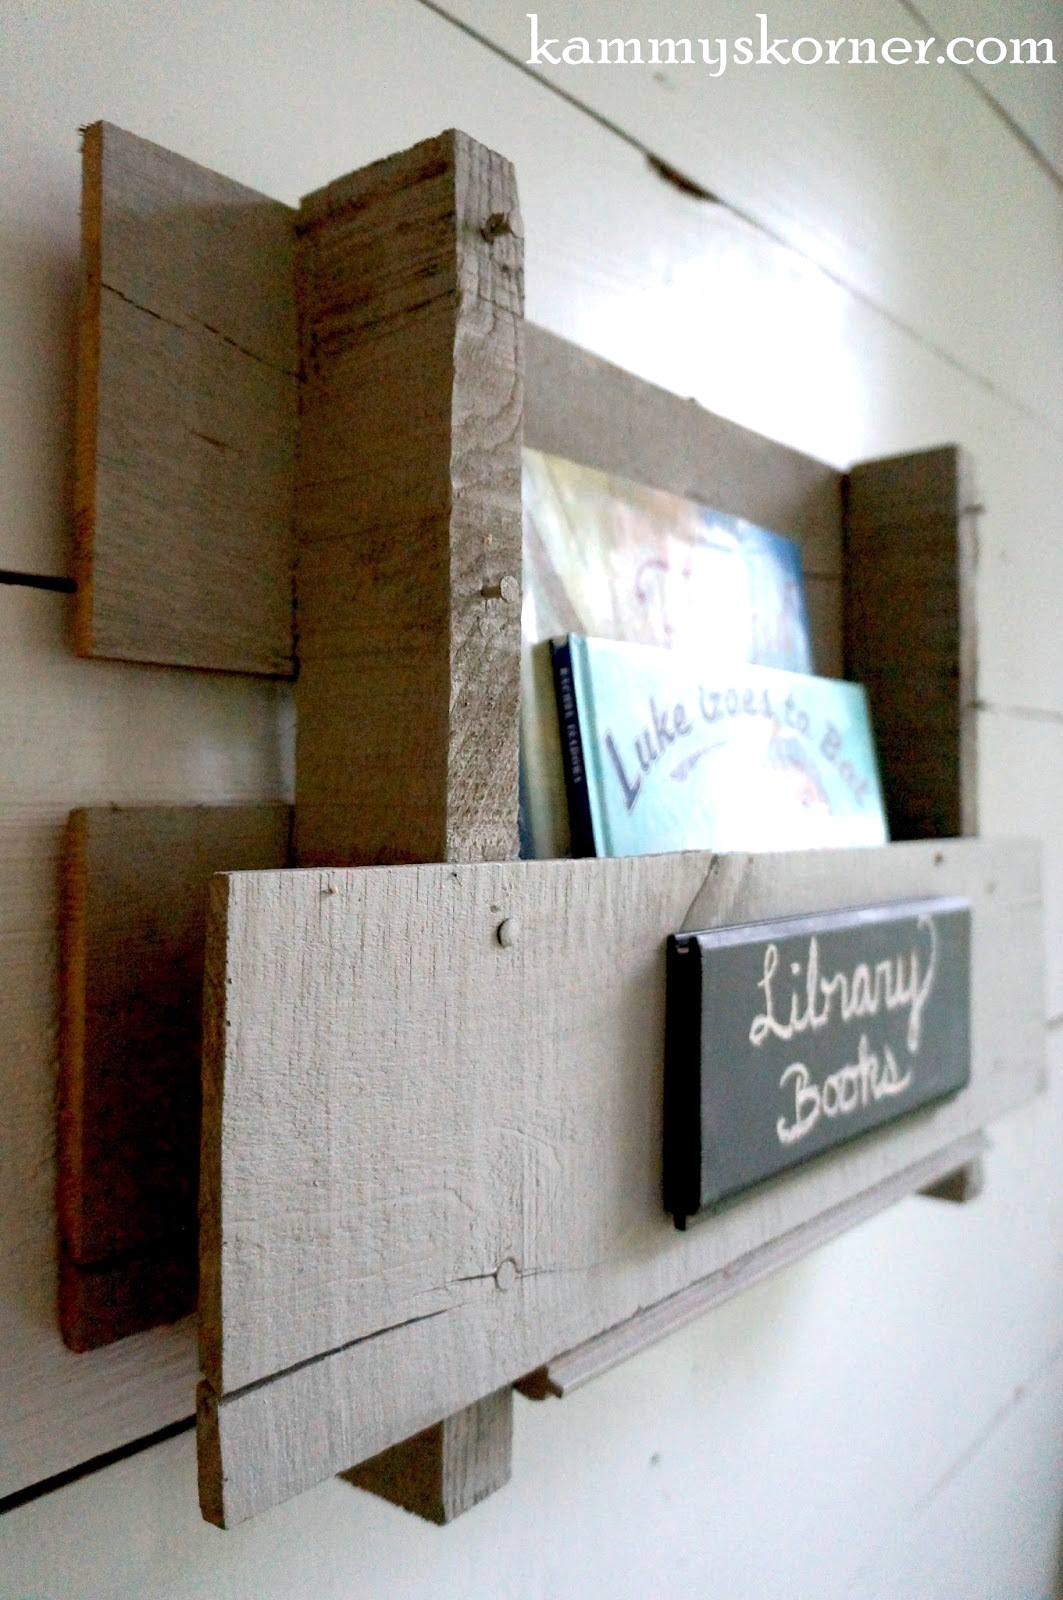 Pallet wood cubby styled bookshelf, by Kammy's Korner, featured on Funky Junk Interiors